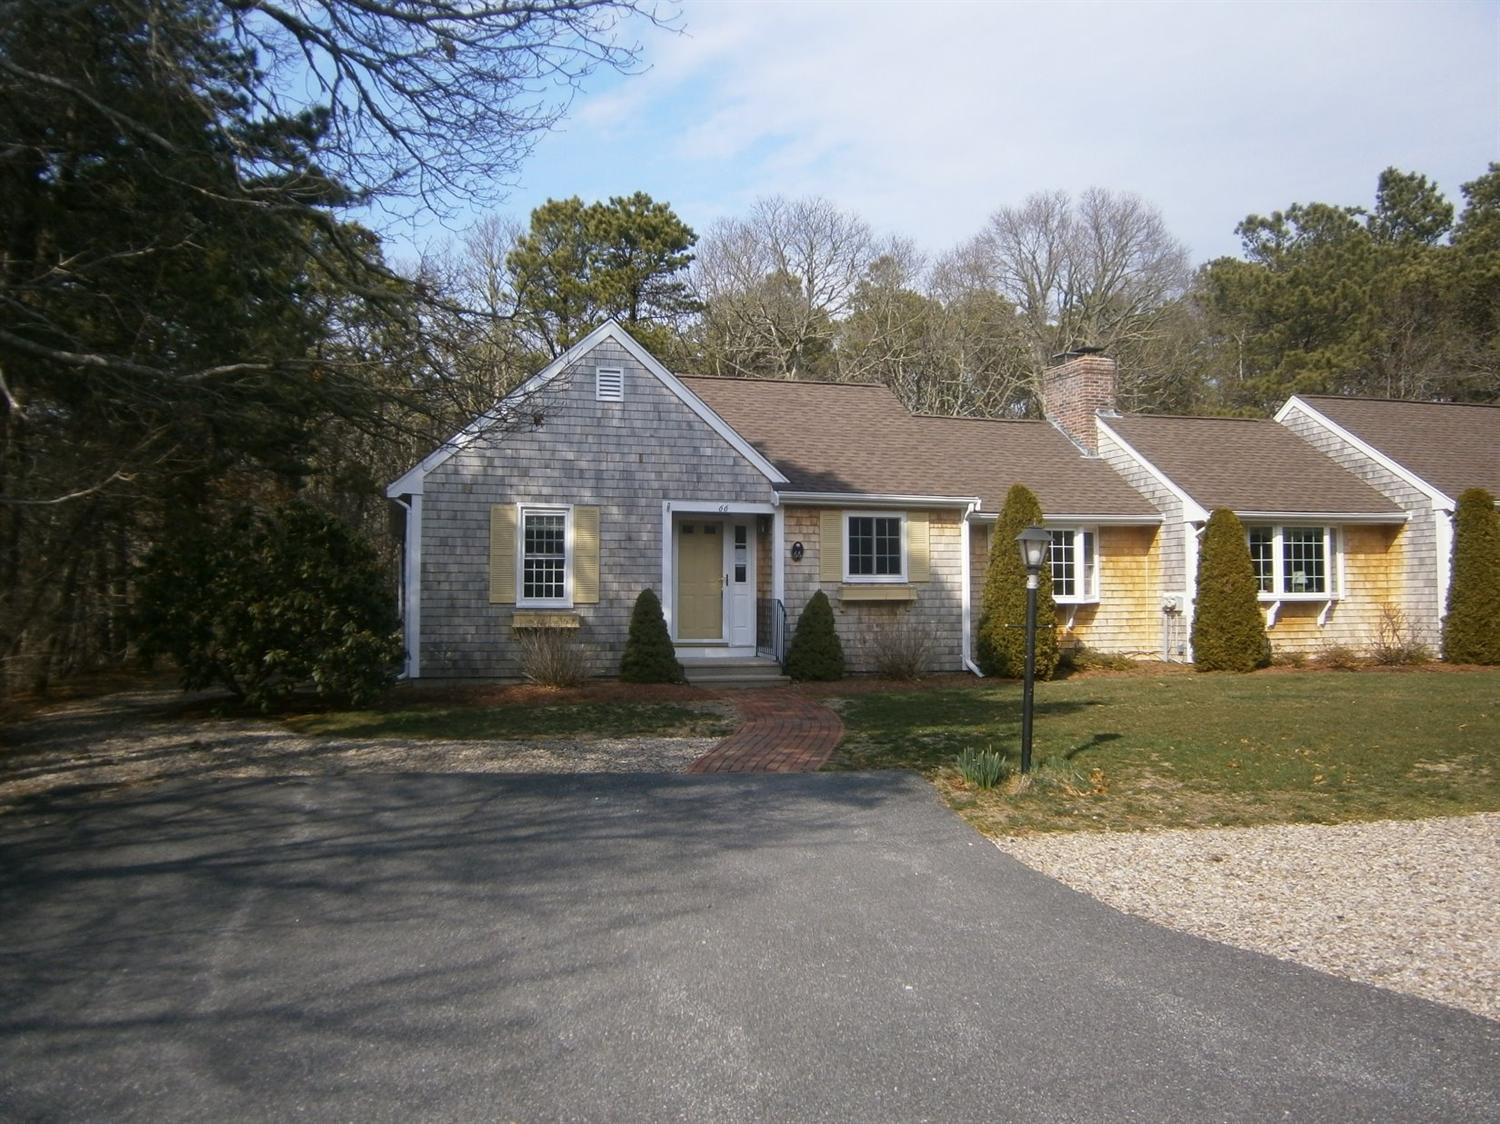 66  Debs Hill Rd,  Yarmouth, MA